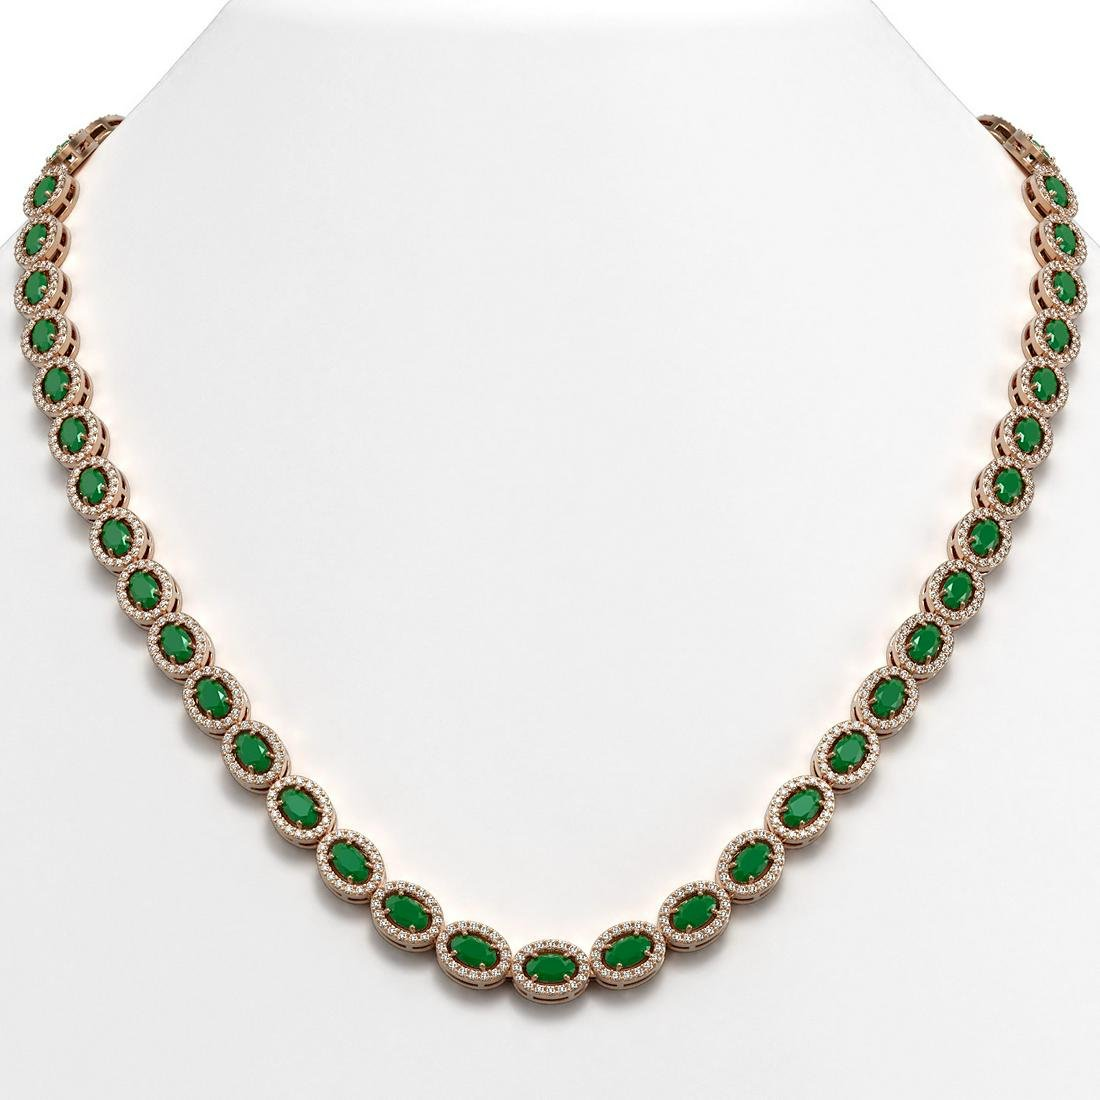 26.38 ctw Emerald & Diamond Micro Pave Halo Necklace